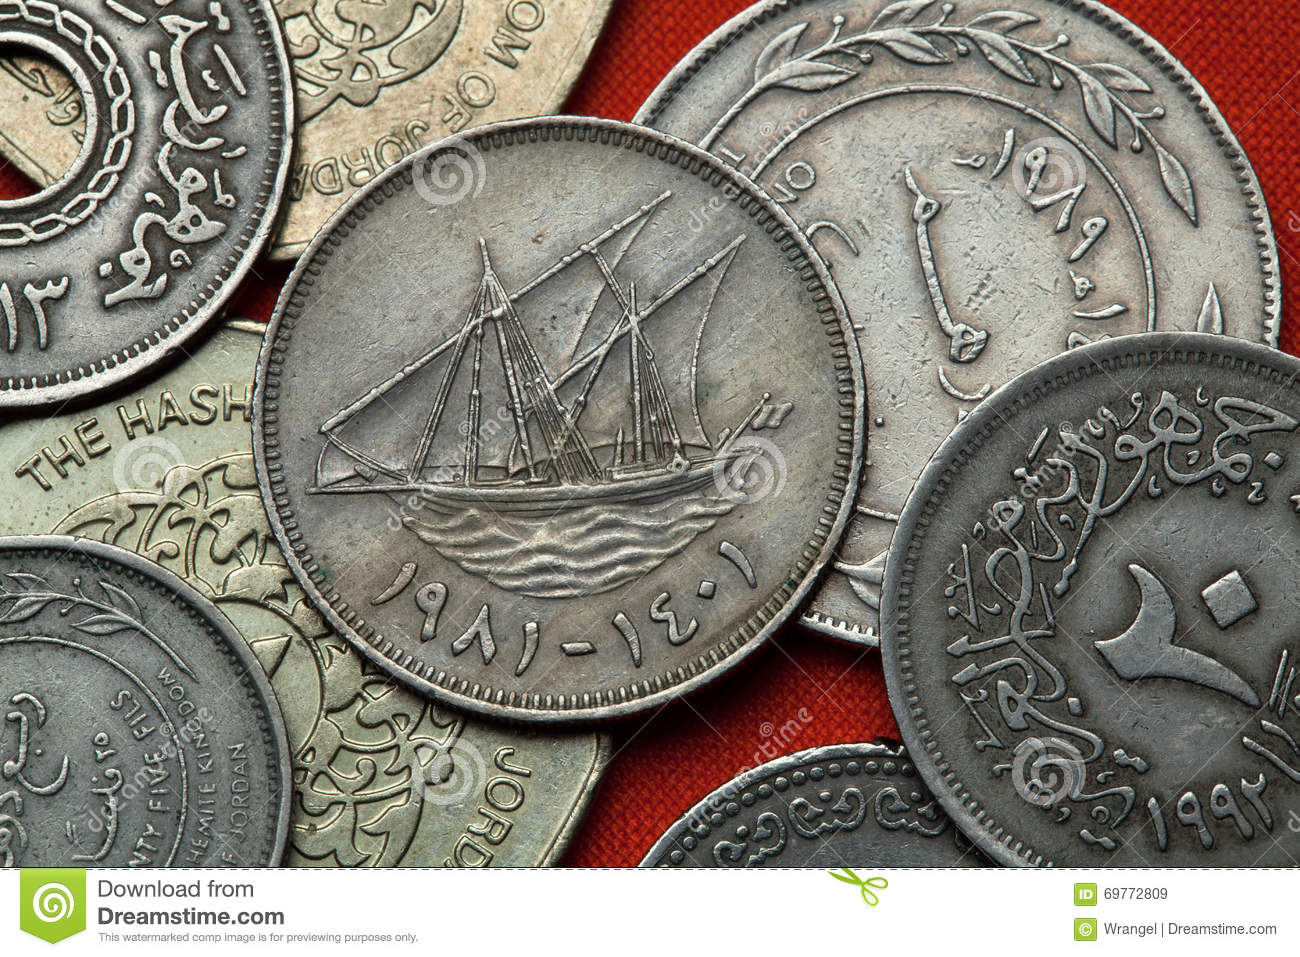 Kuwait 100 Fils Coin Stock Photo Image Of Coin Kuwait 16274800